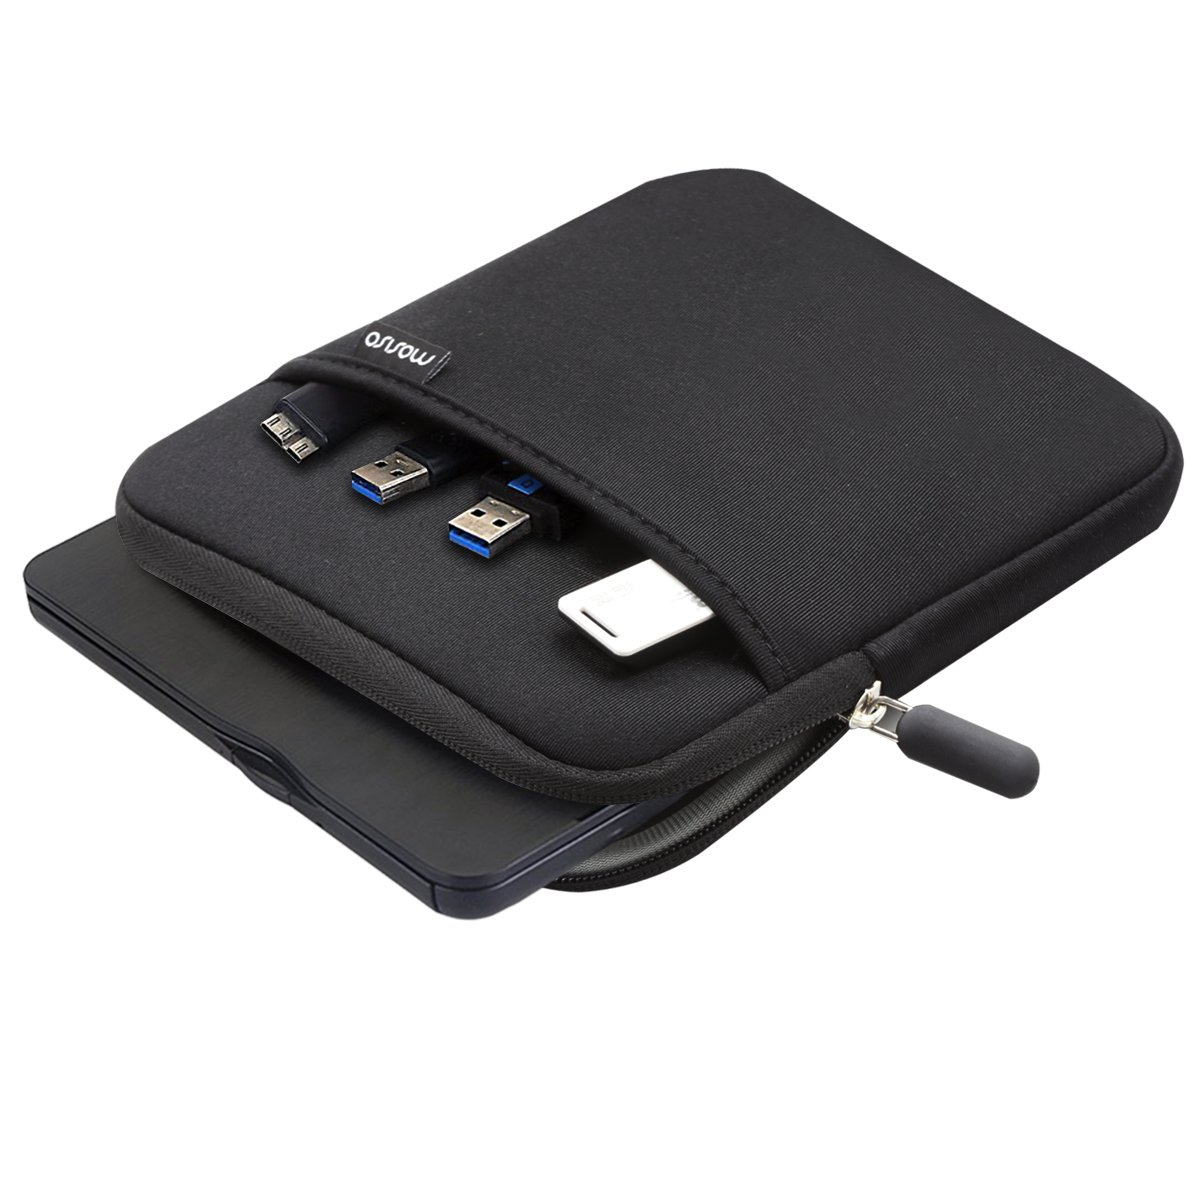 MOSISO External USB CD DVD Writer Blu-Ray & Hard Drive Sleeve Bag, Compatible MD564ZM/A USB 2.0 SuperDrive, Magic Trackpad, Samsung SE-218CB SE-218GN SE-208GB SE-208DB, LG GP65NB60, Dell DW316, Black by MOSISO (Image #2)